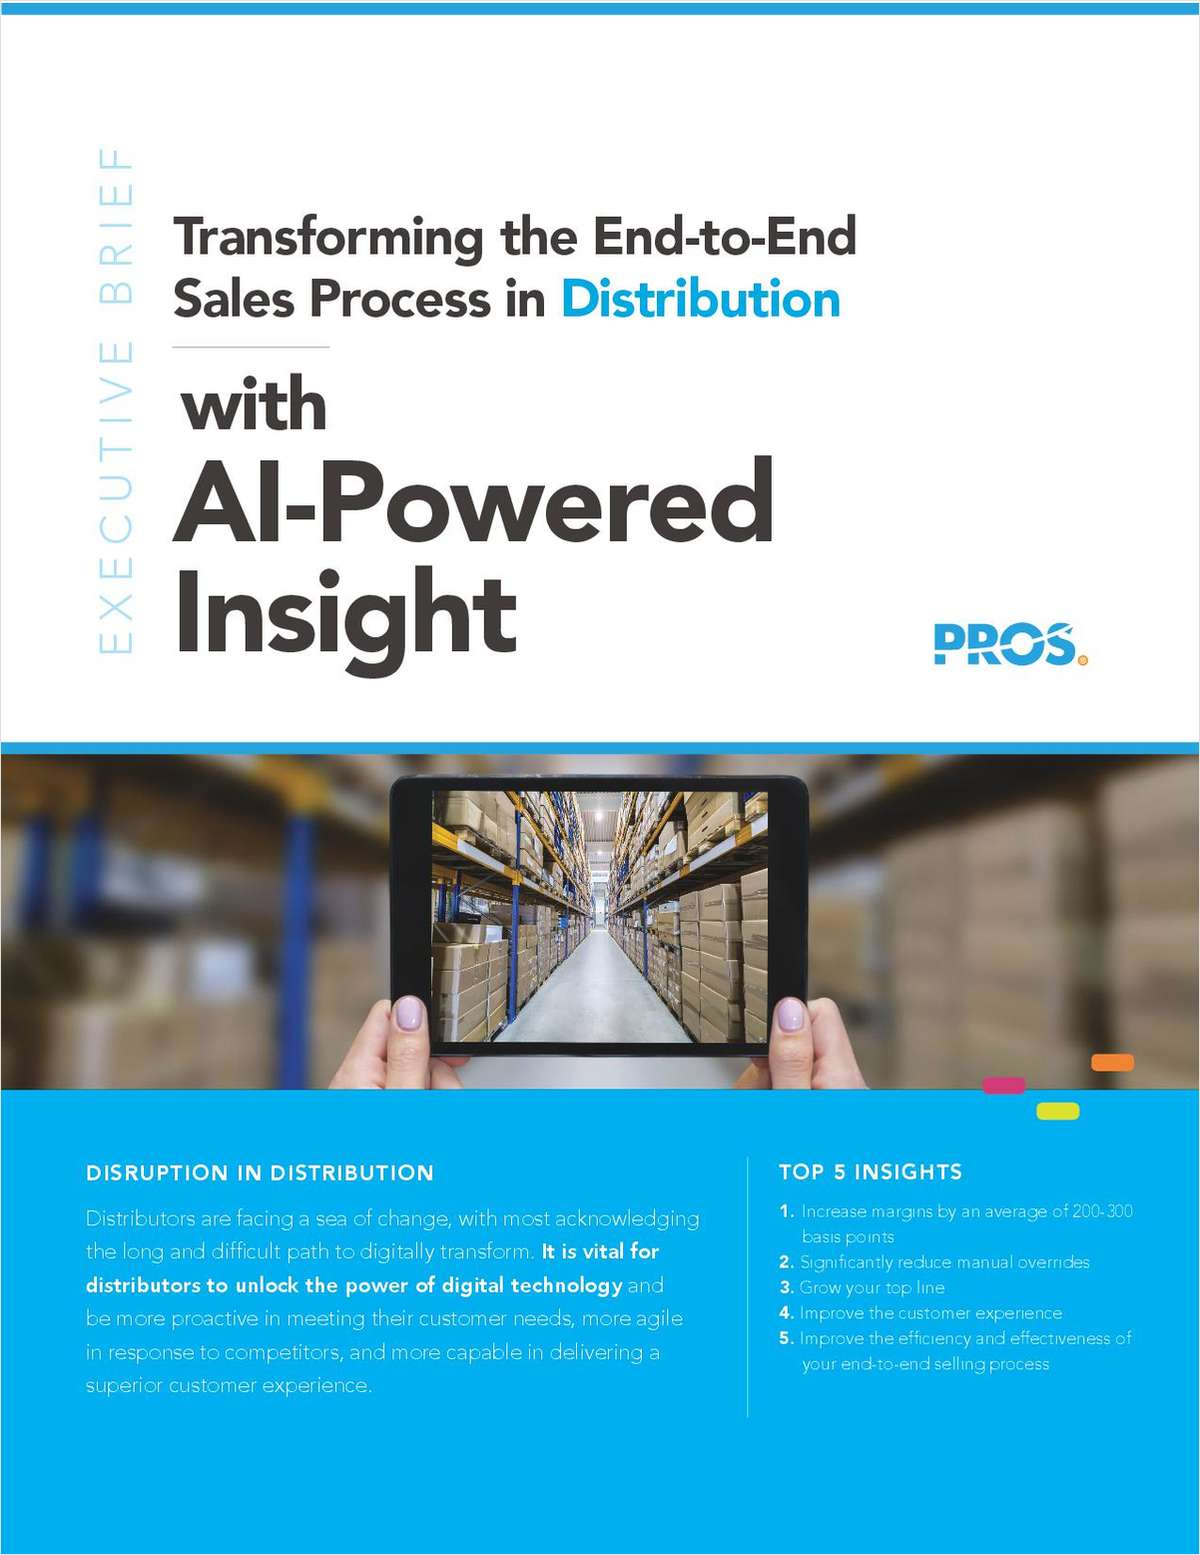 Transforming the End-to-End Sales Process in Distribution with AI-Powered Insight